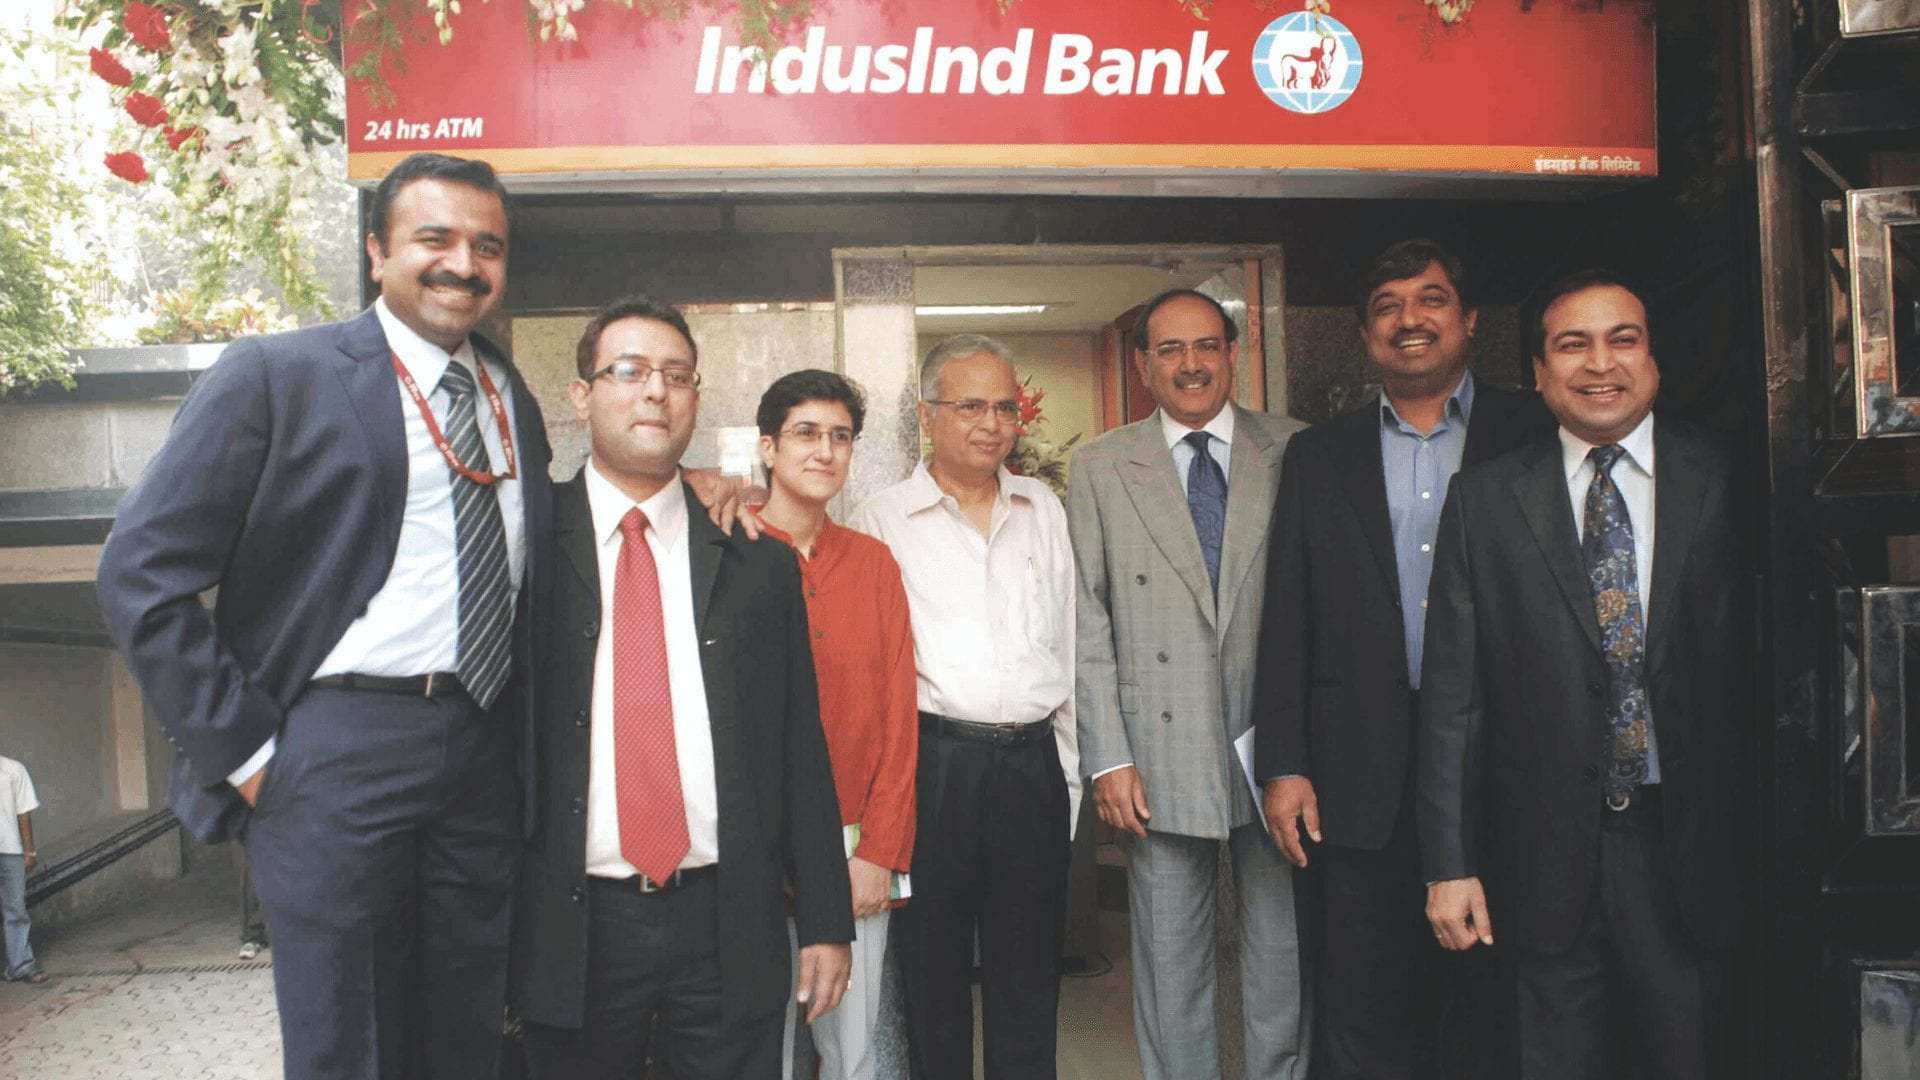 IndusInd Bank Limited